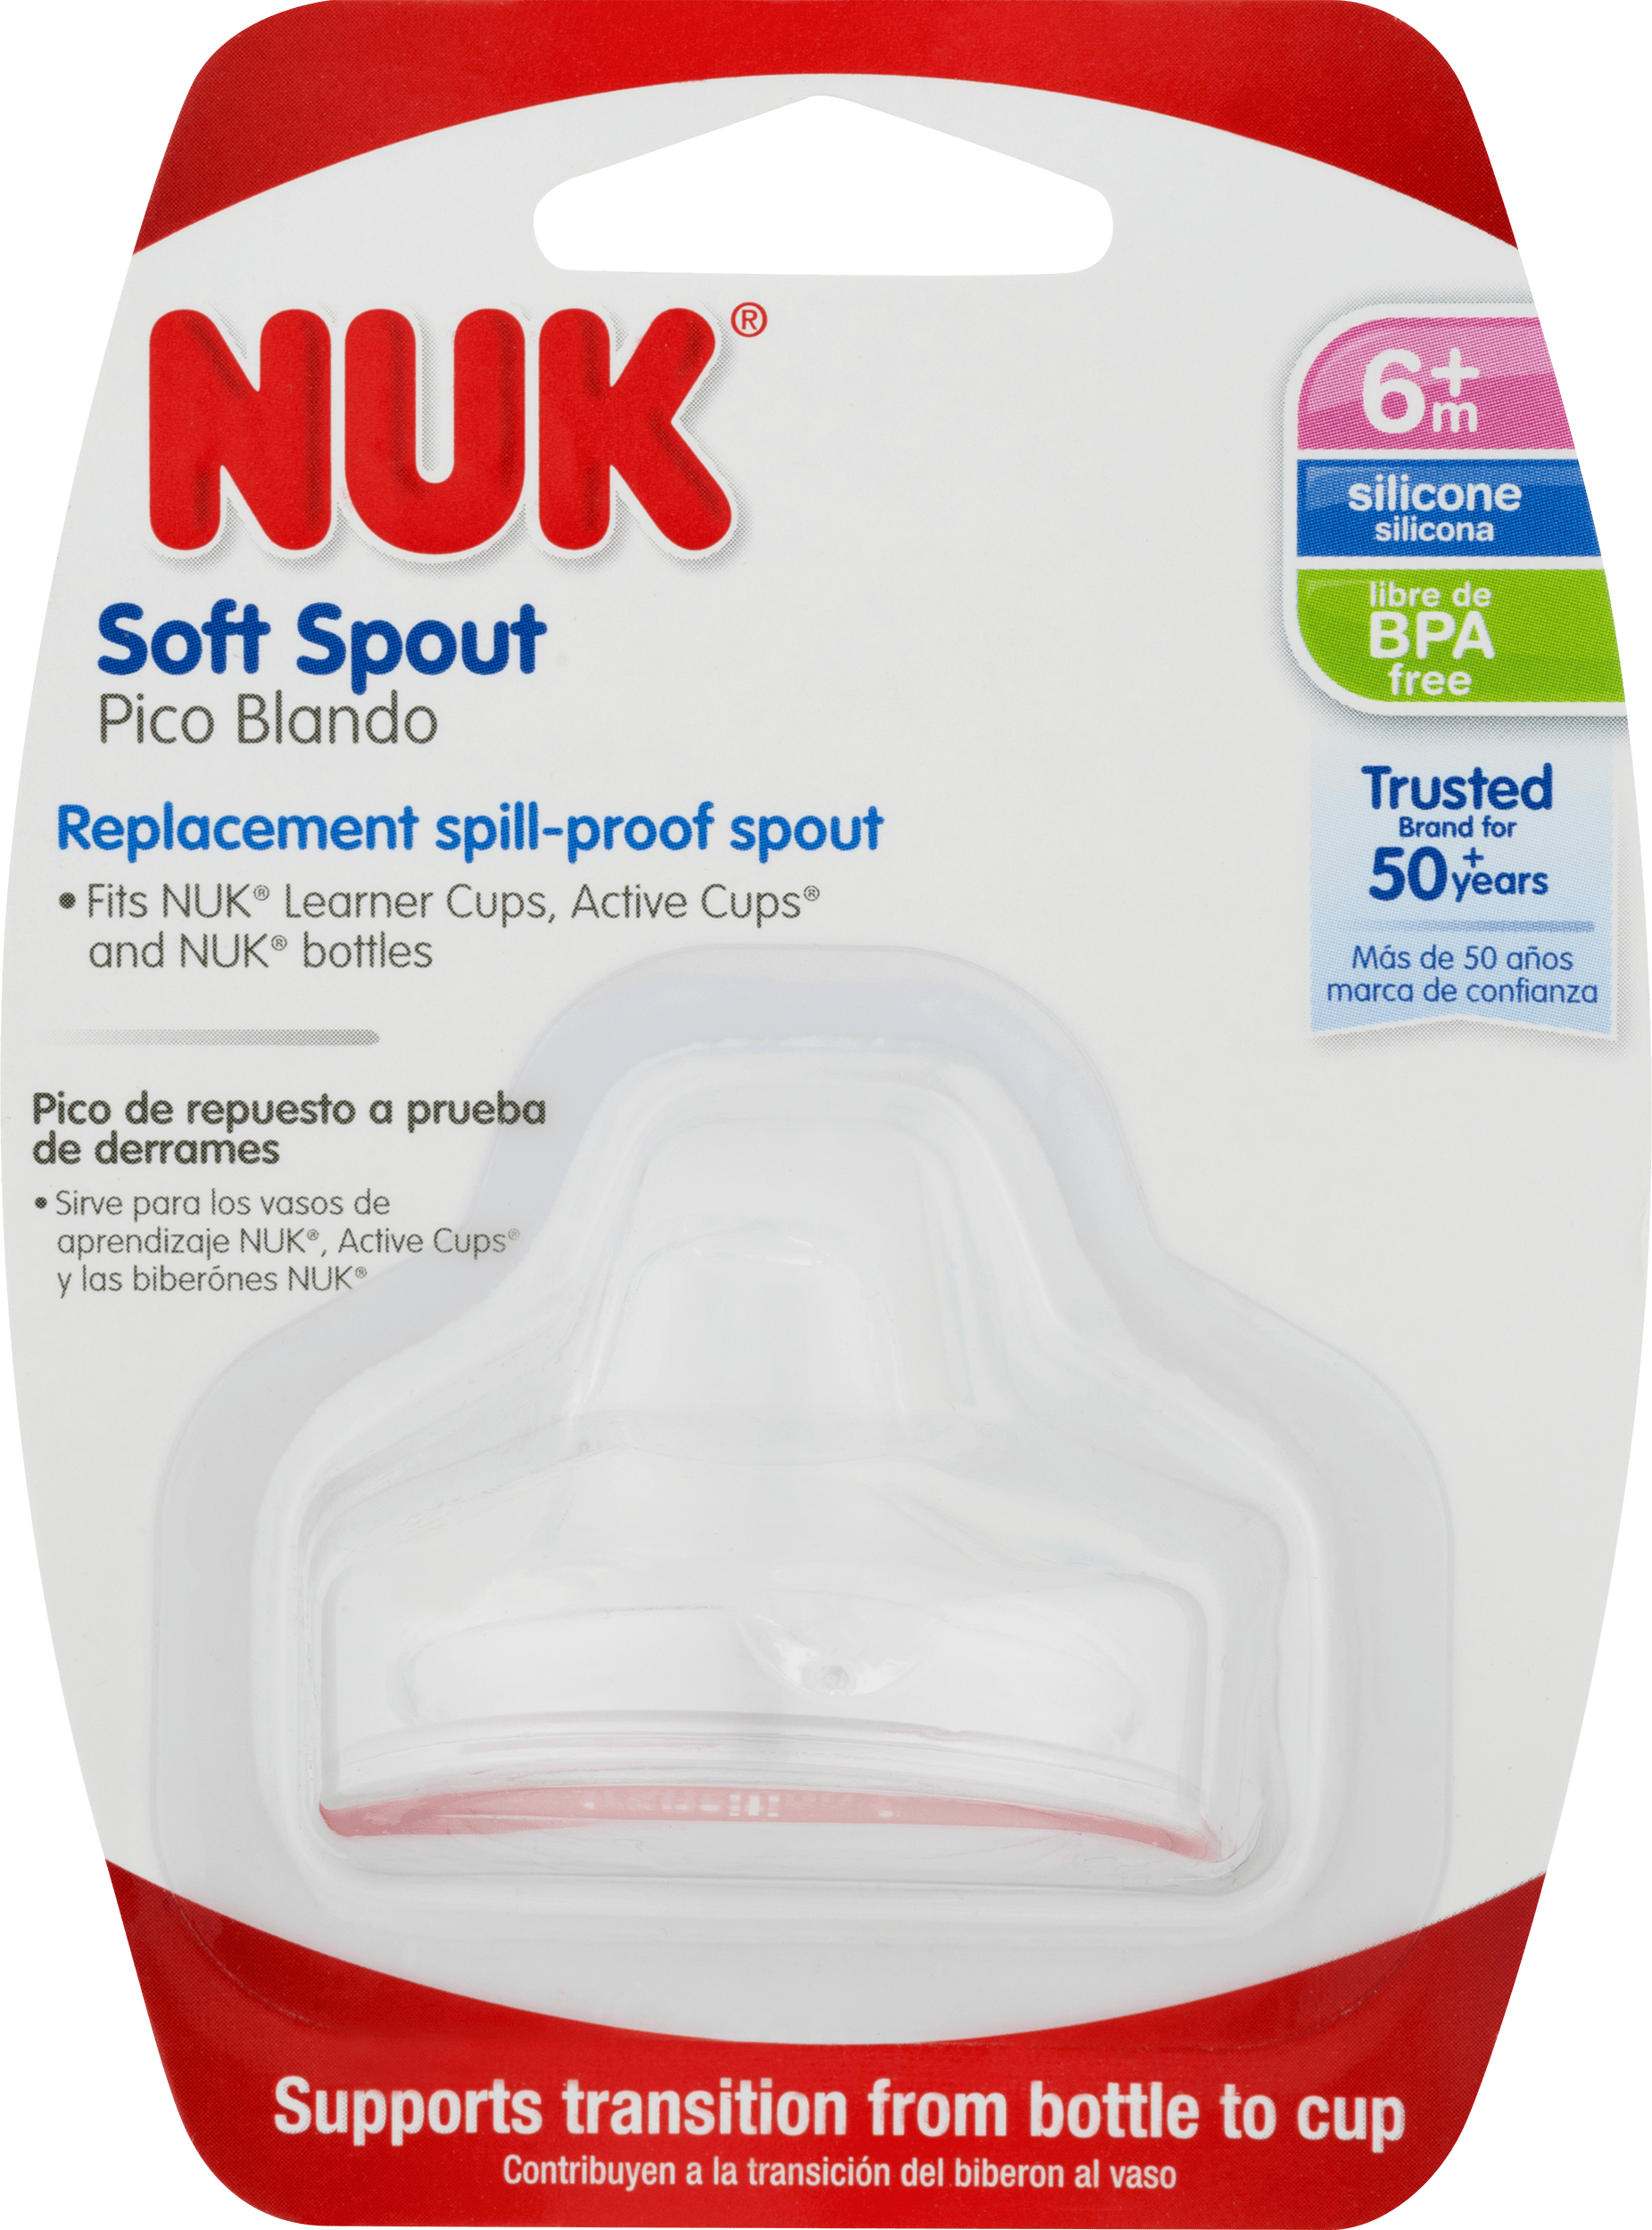 Nuk Clear Silicone Replacement Soft Spouts Pack of 4